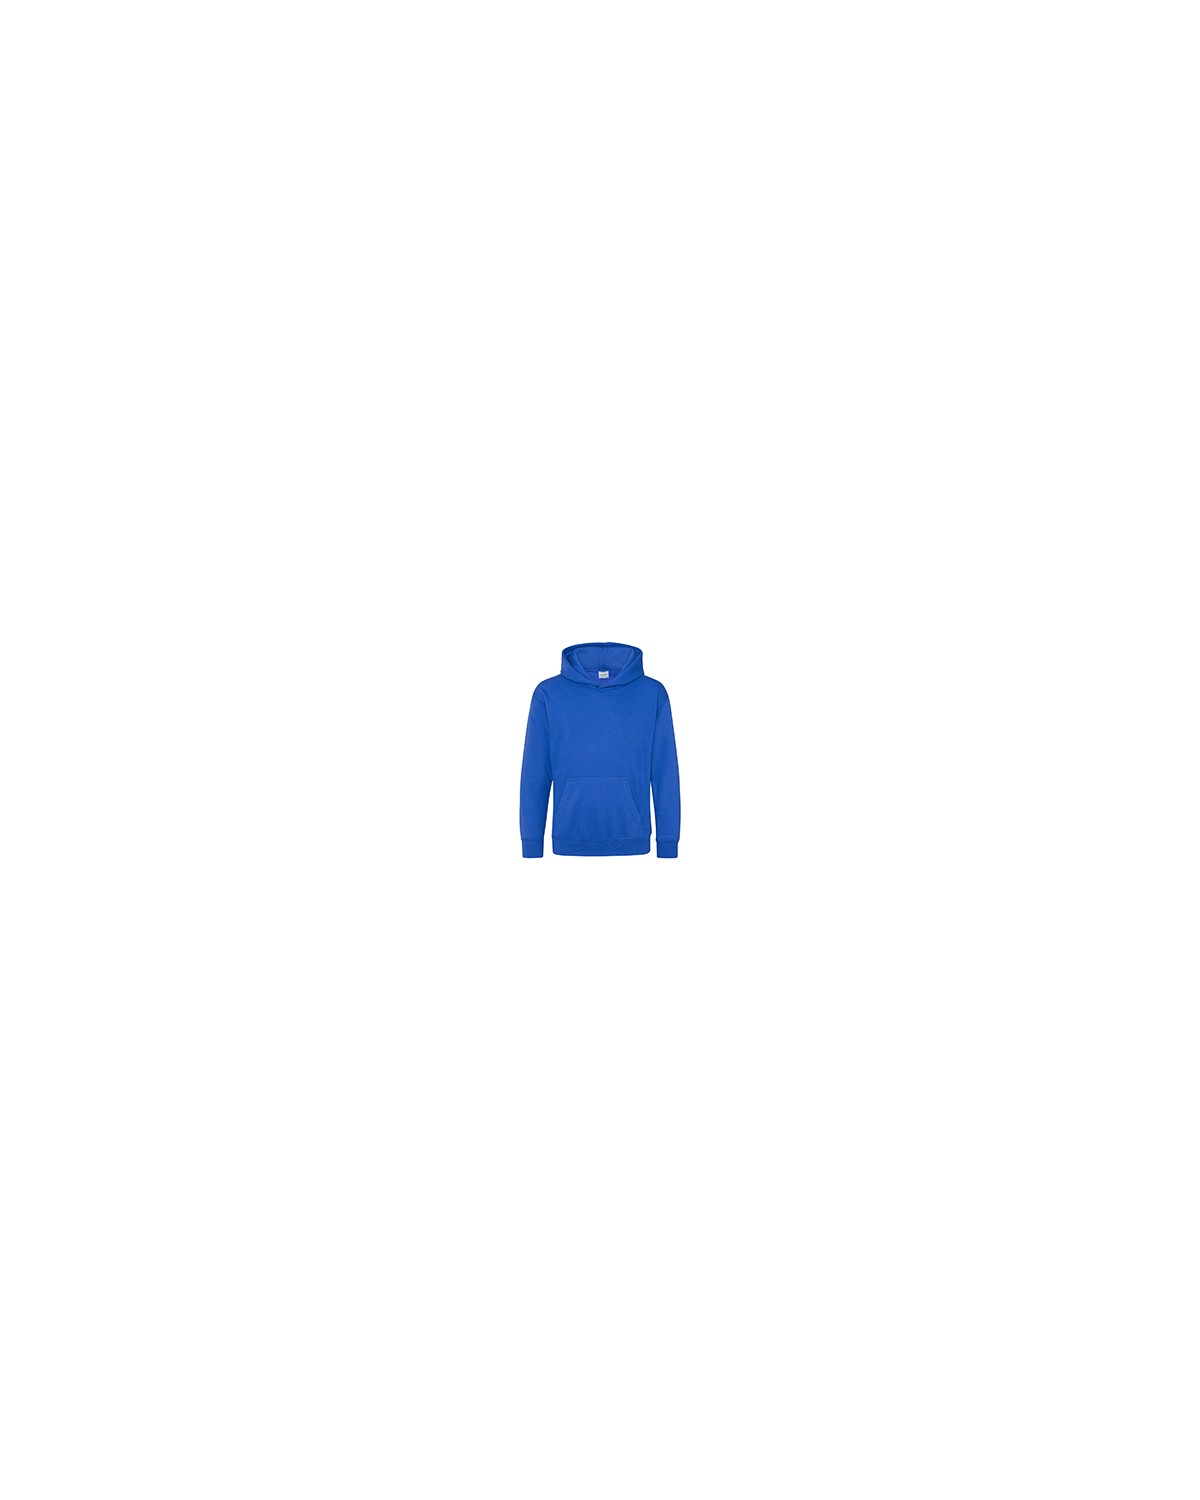 JHY001 Just Hoods By AWDis ROYAL BLUE